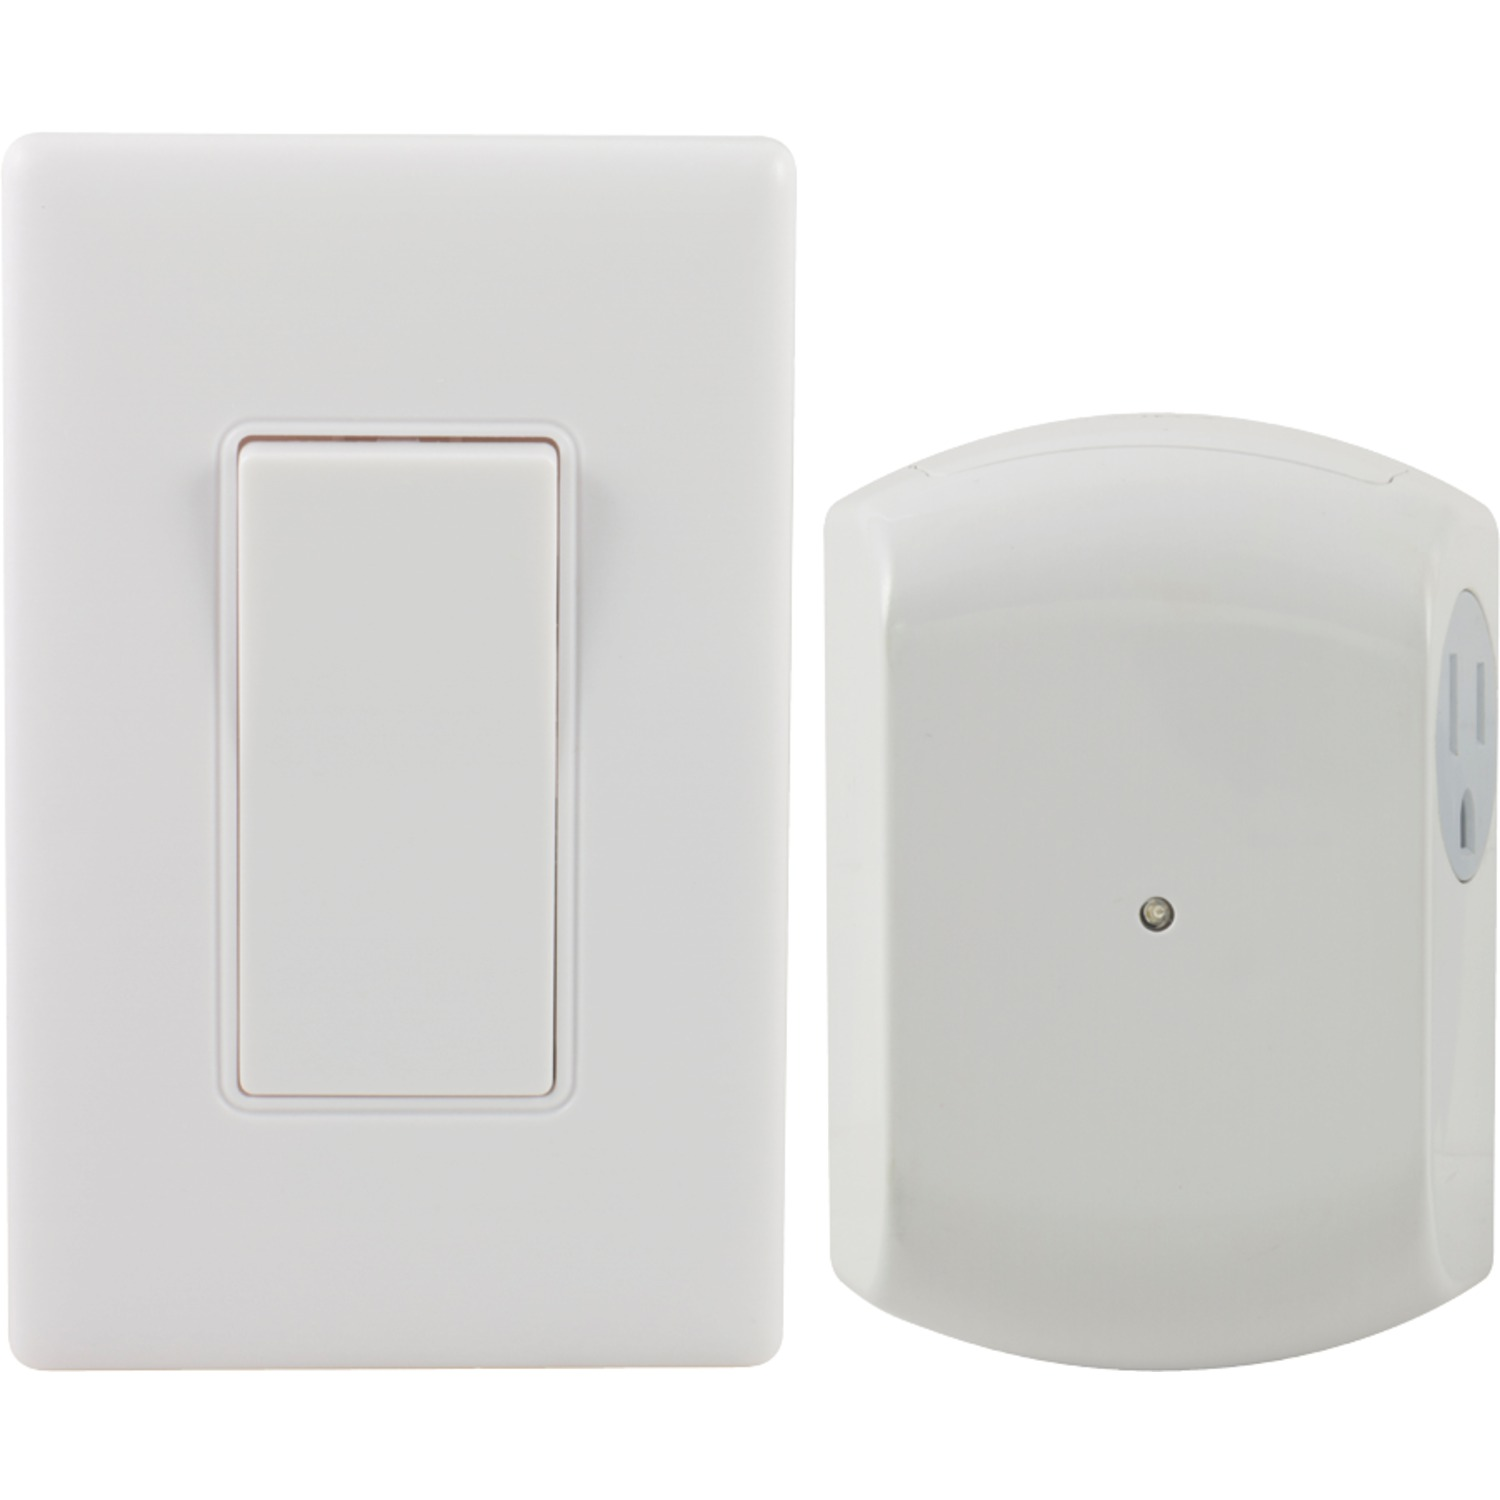 ge 18279 wall switch light control remote with 1 outlet receiver. Black Bedroom Furniture Sets. Home Design Ideas